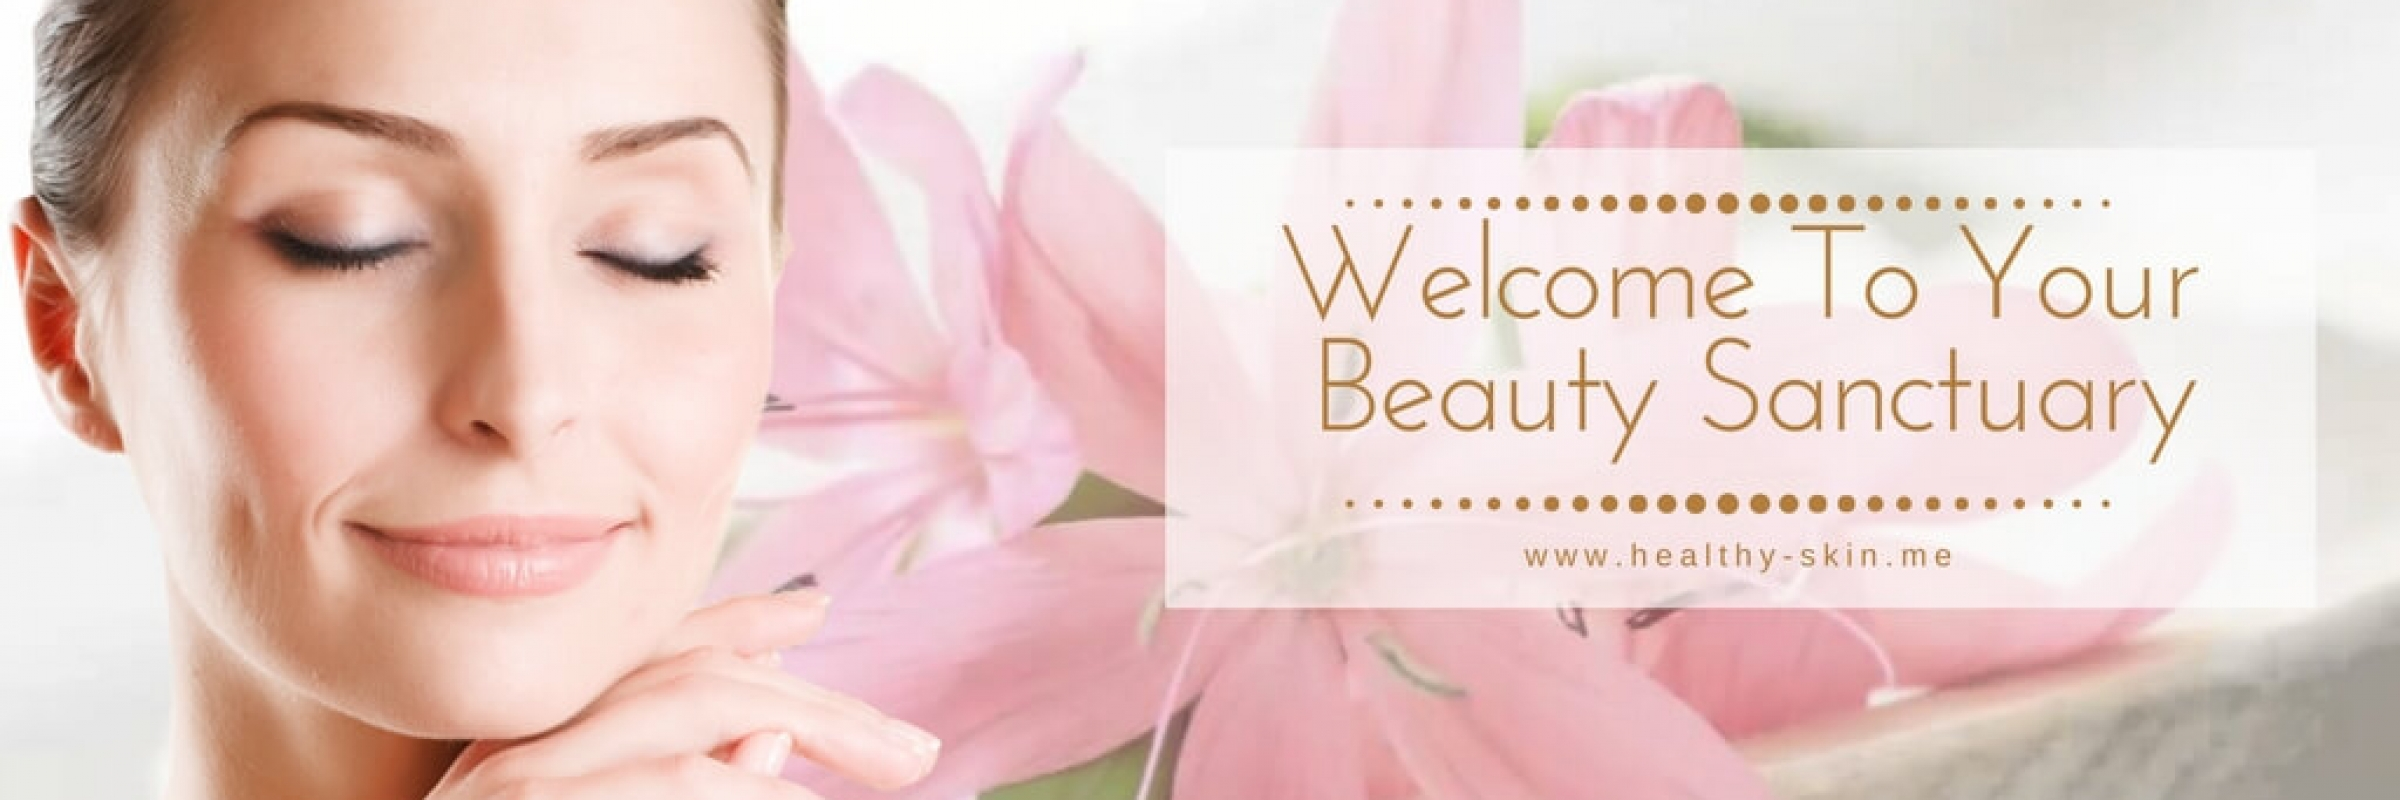 Beauty Skin Clinic Phuket